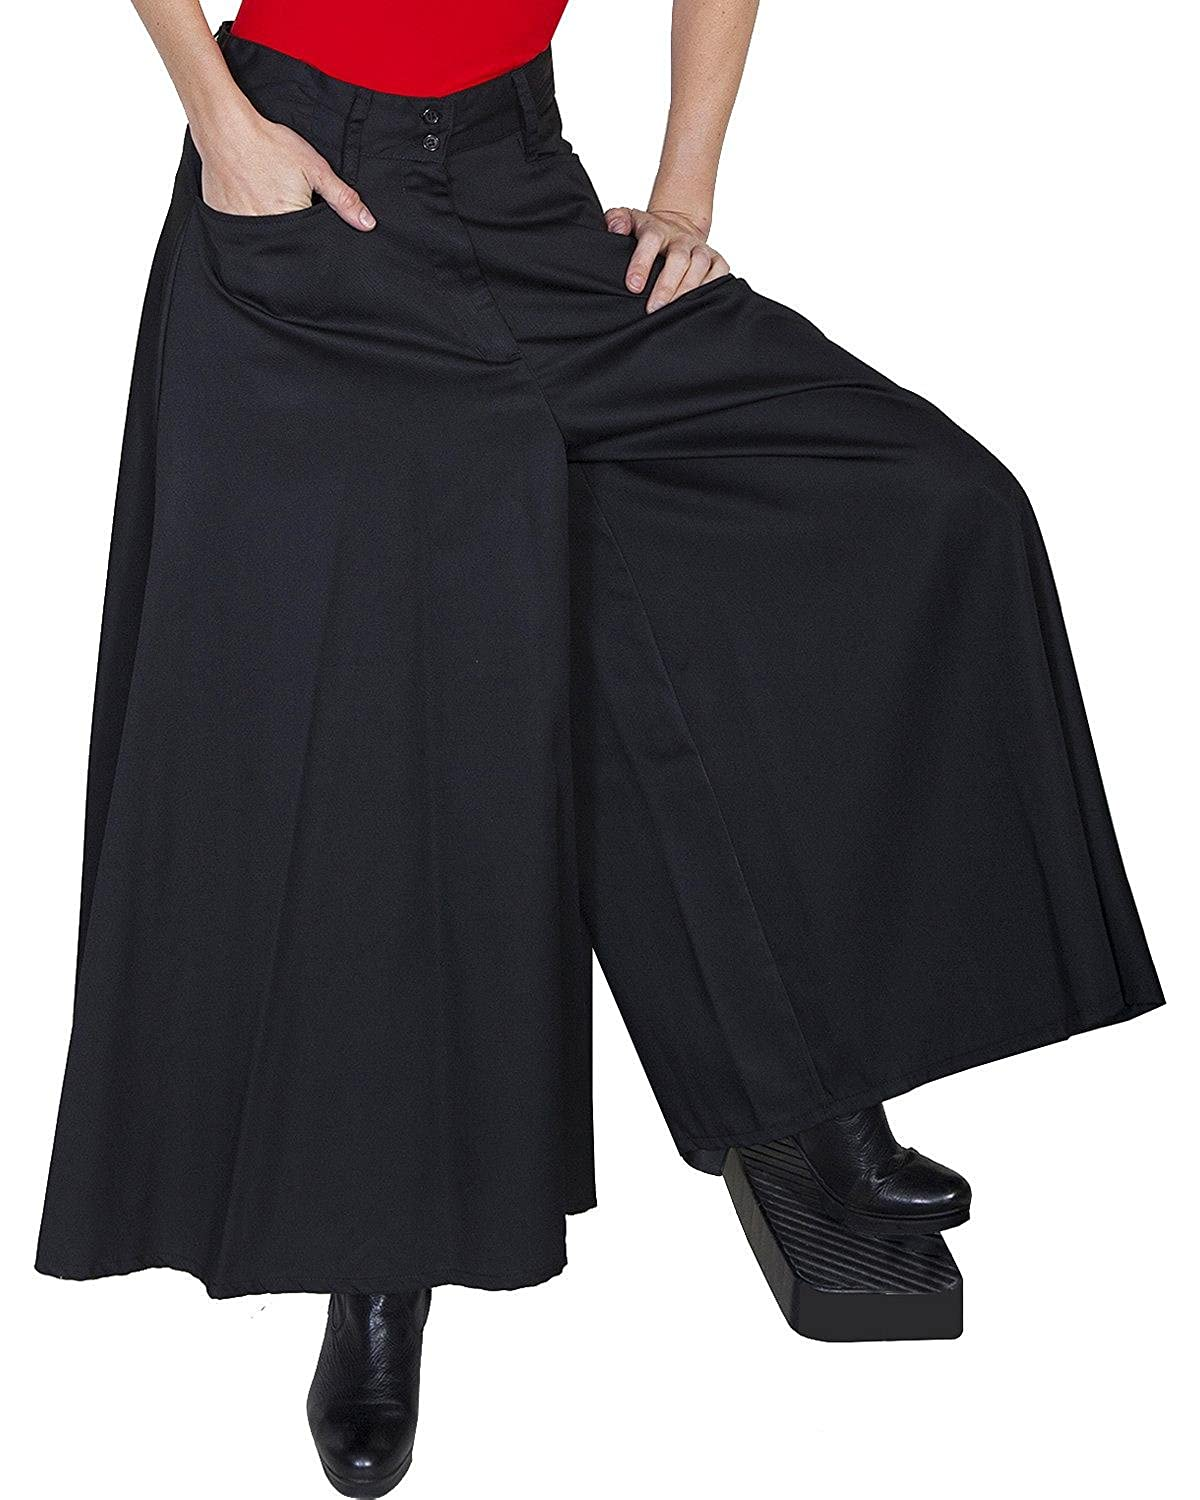 Victorian Skirts | Bustle, Walking, Edwardian Skirts Scully Womens Long Split Skirt $83.74 AT vintagedancer.com